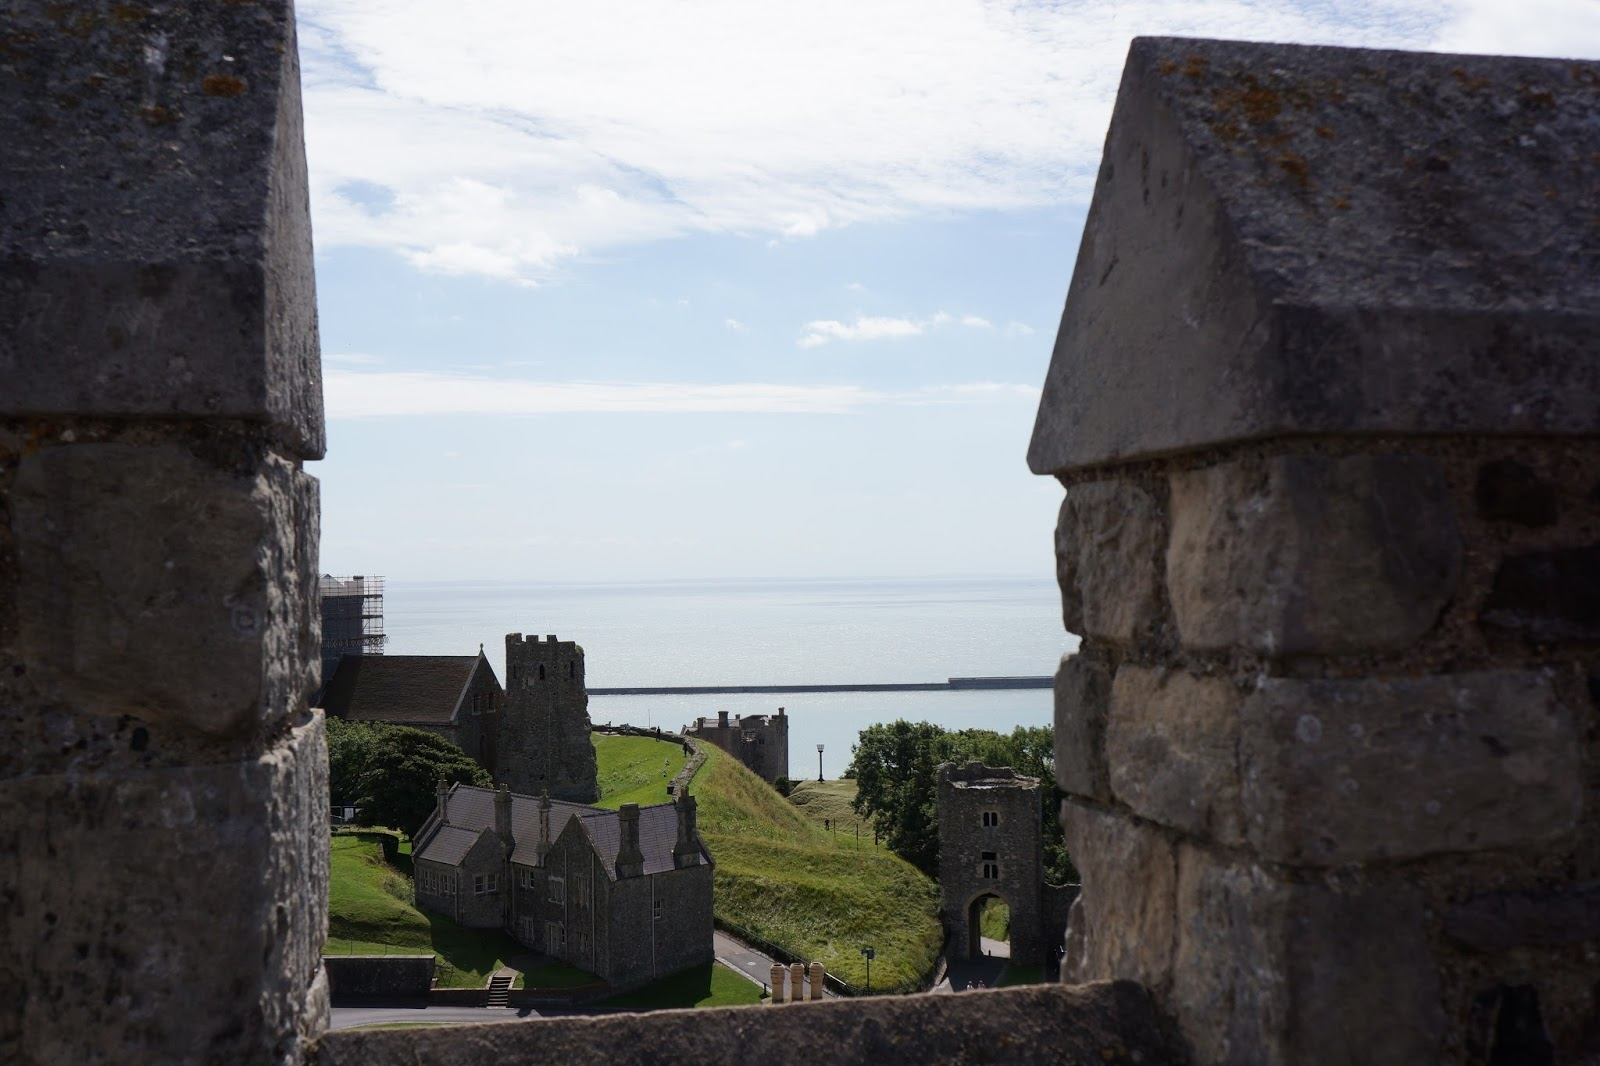 view between crenellations at dover castle